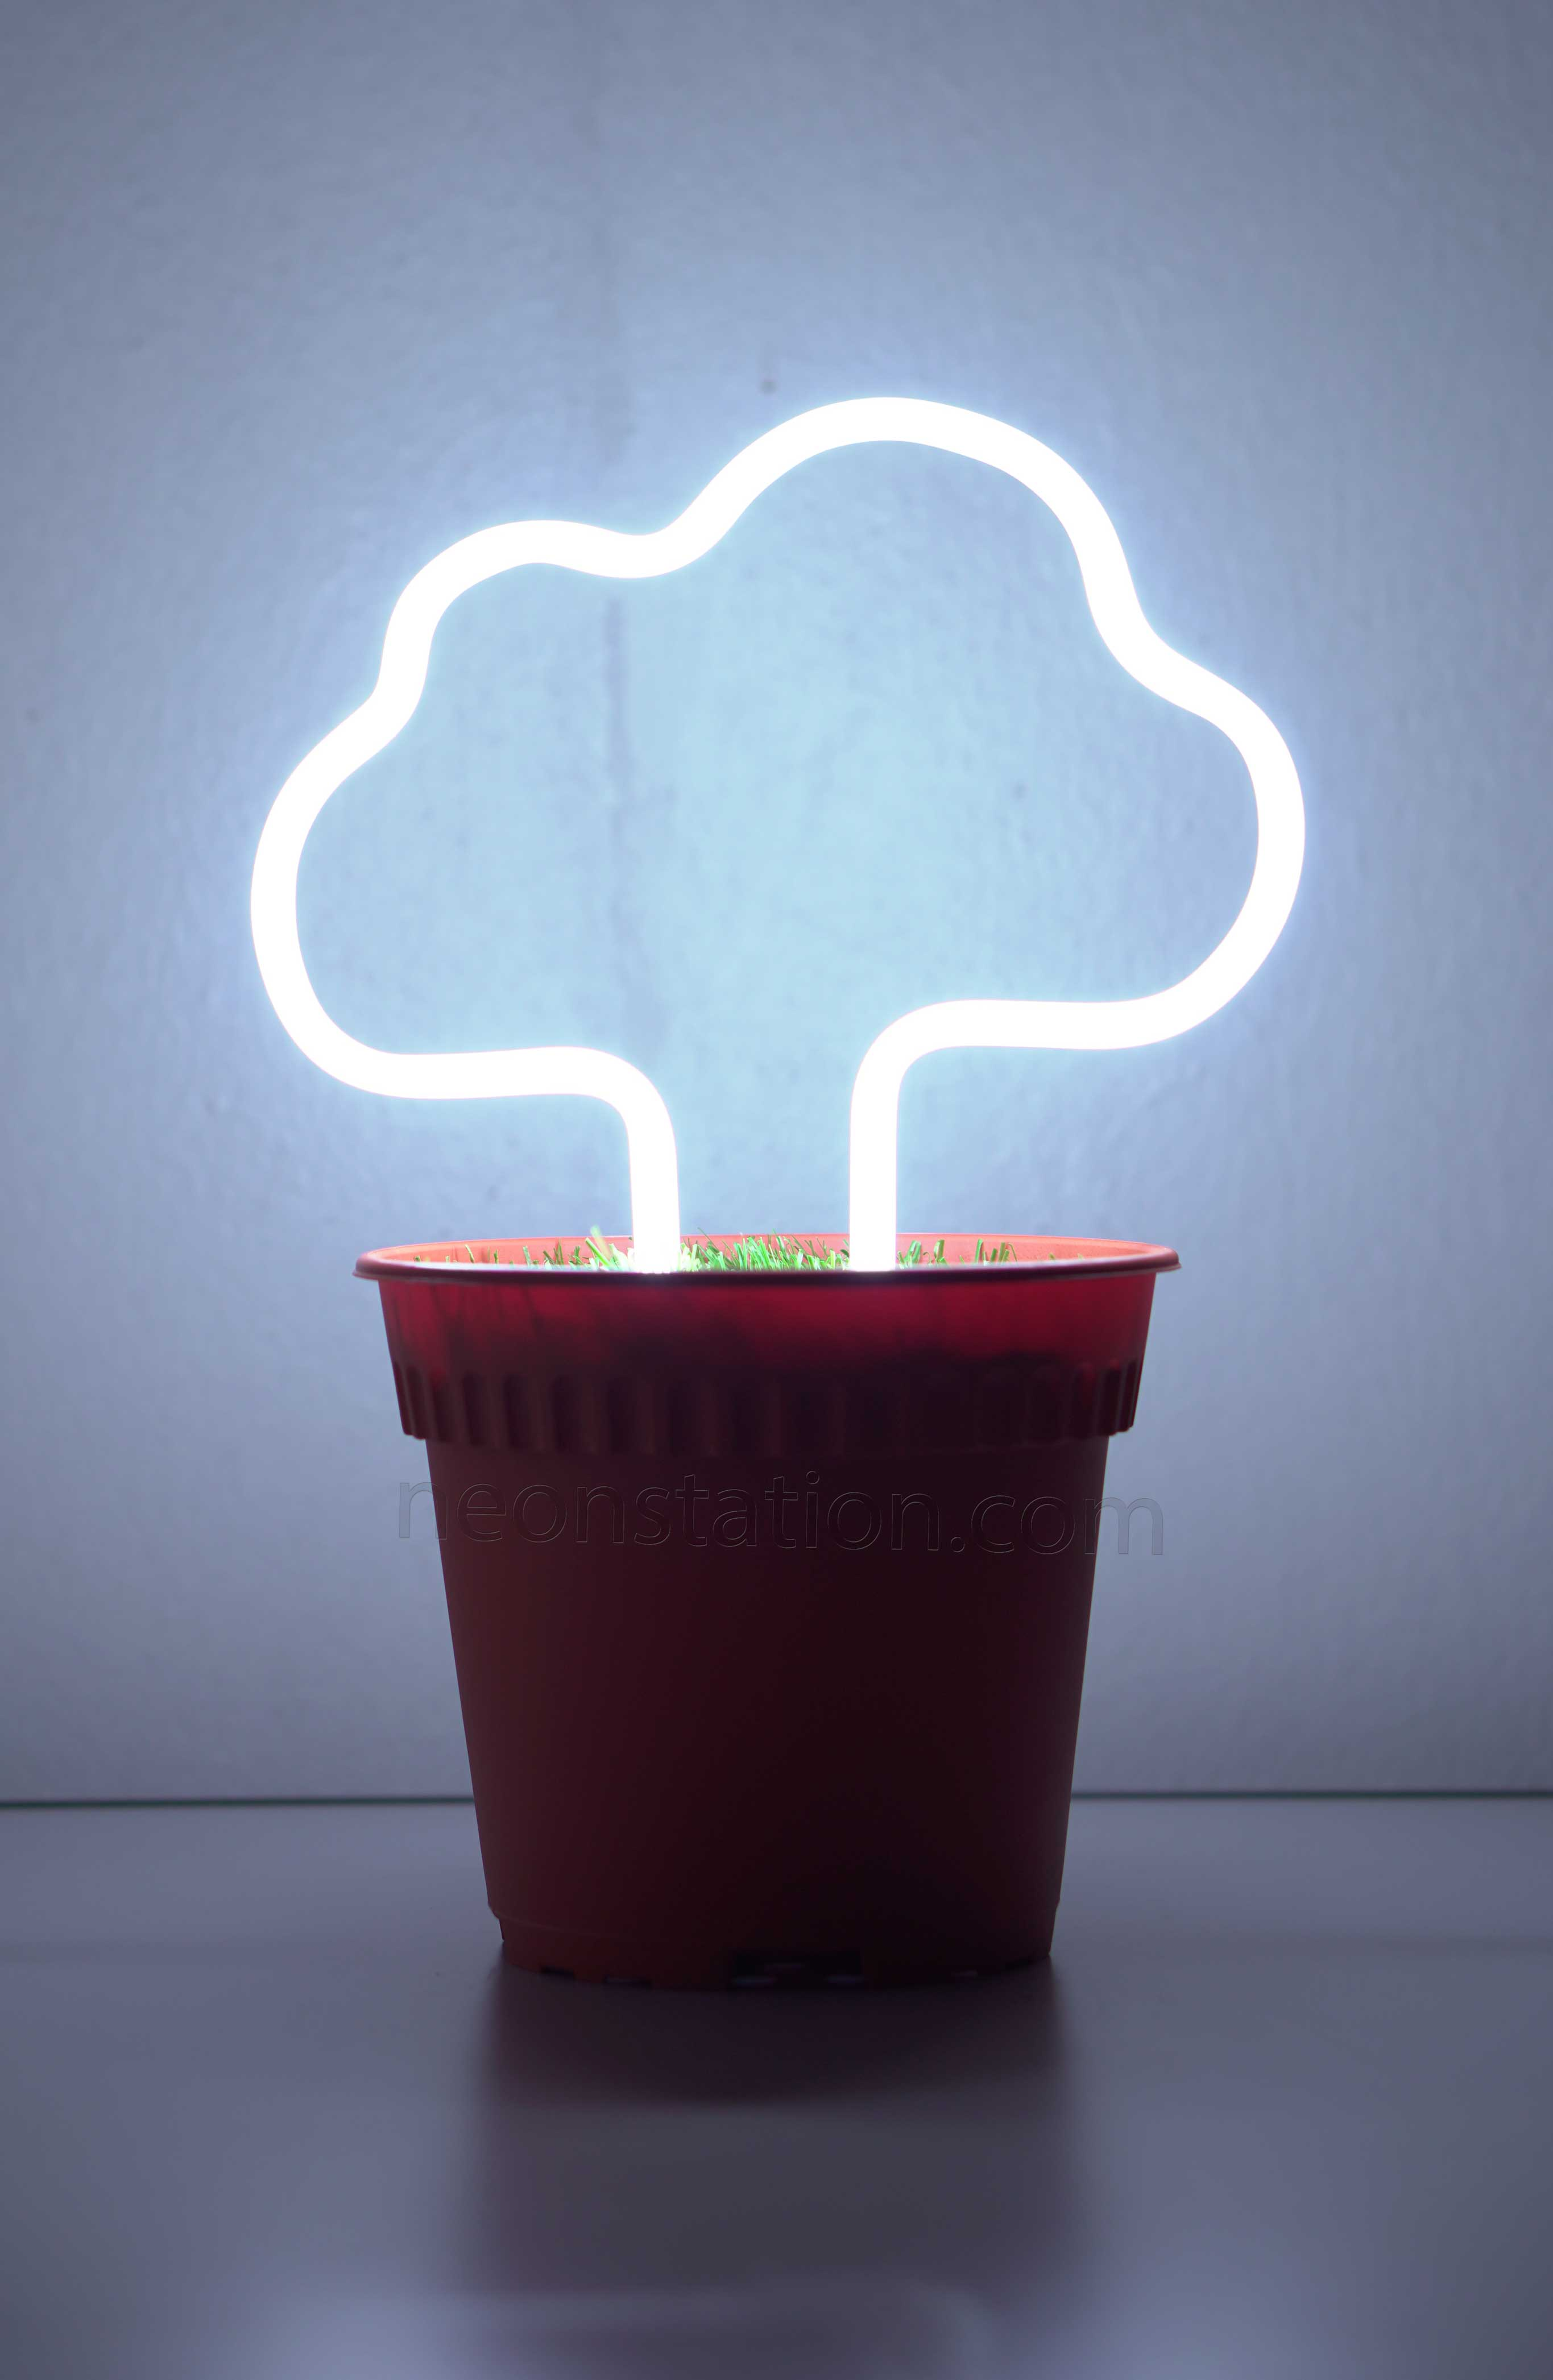 Potted Plant Cloud Neon Sign